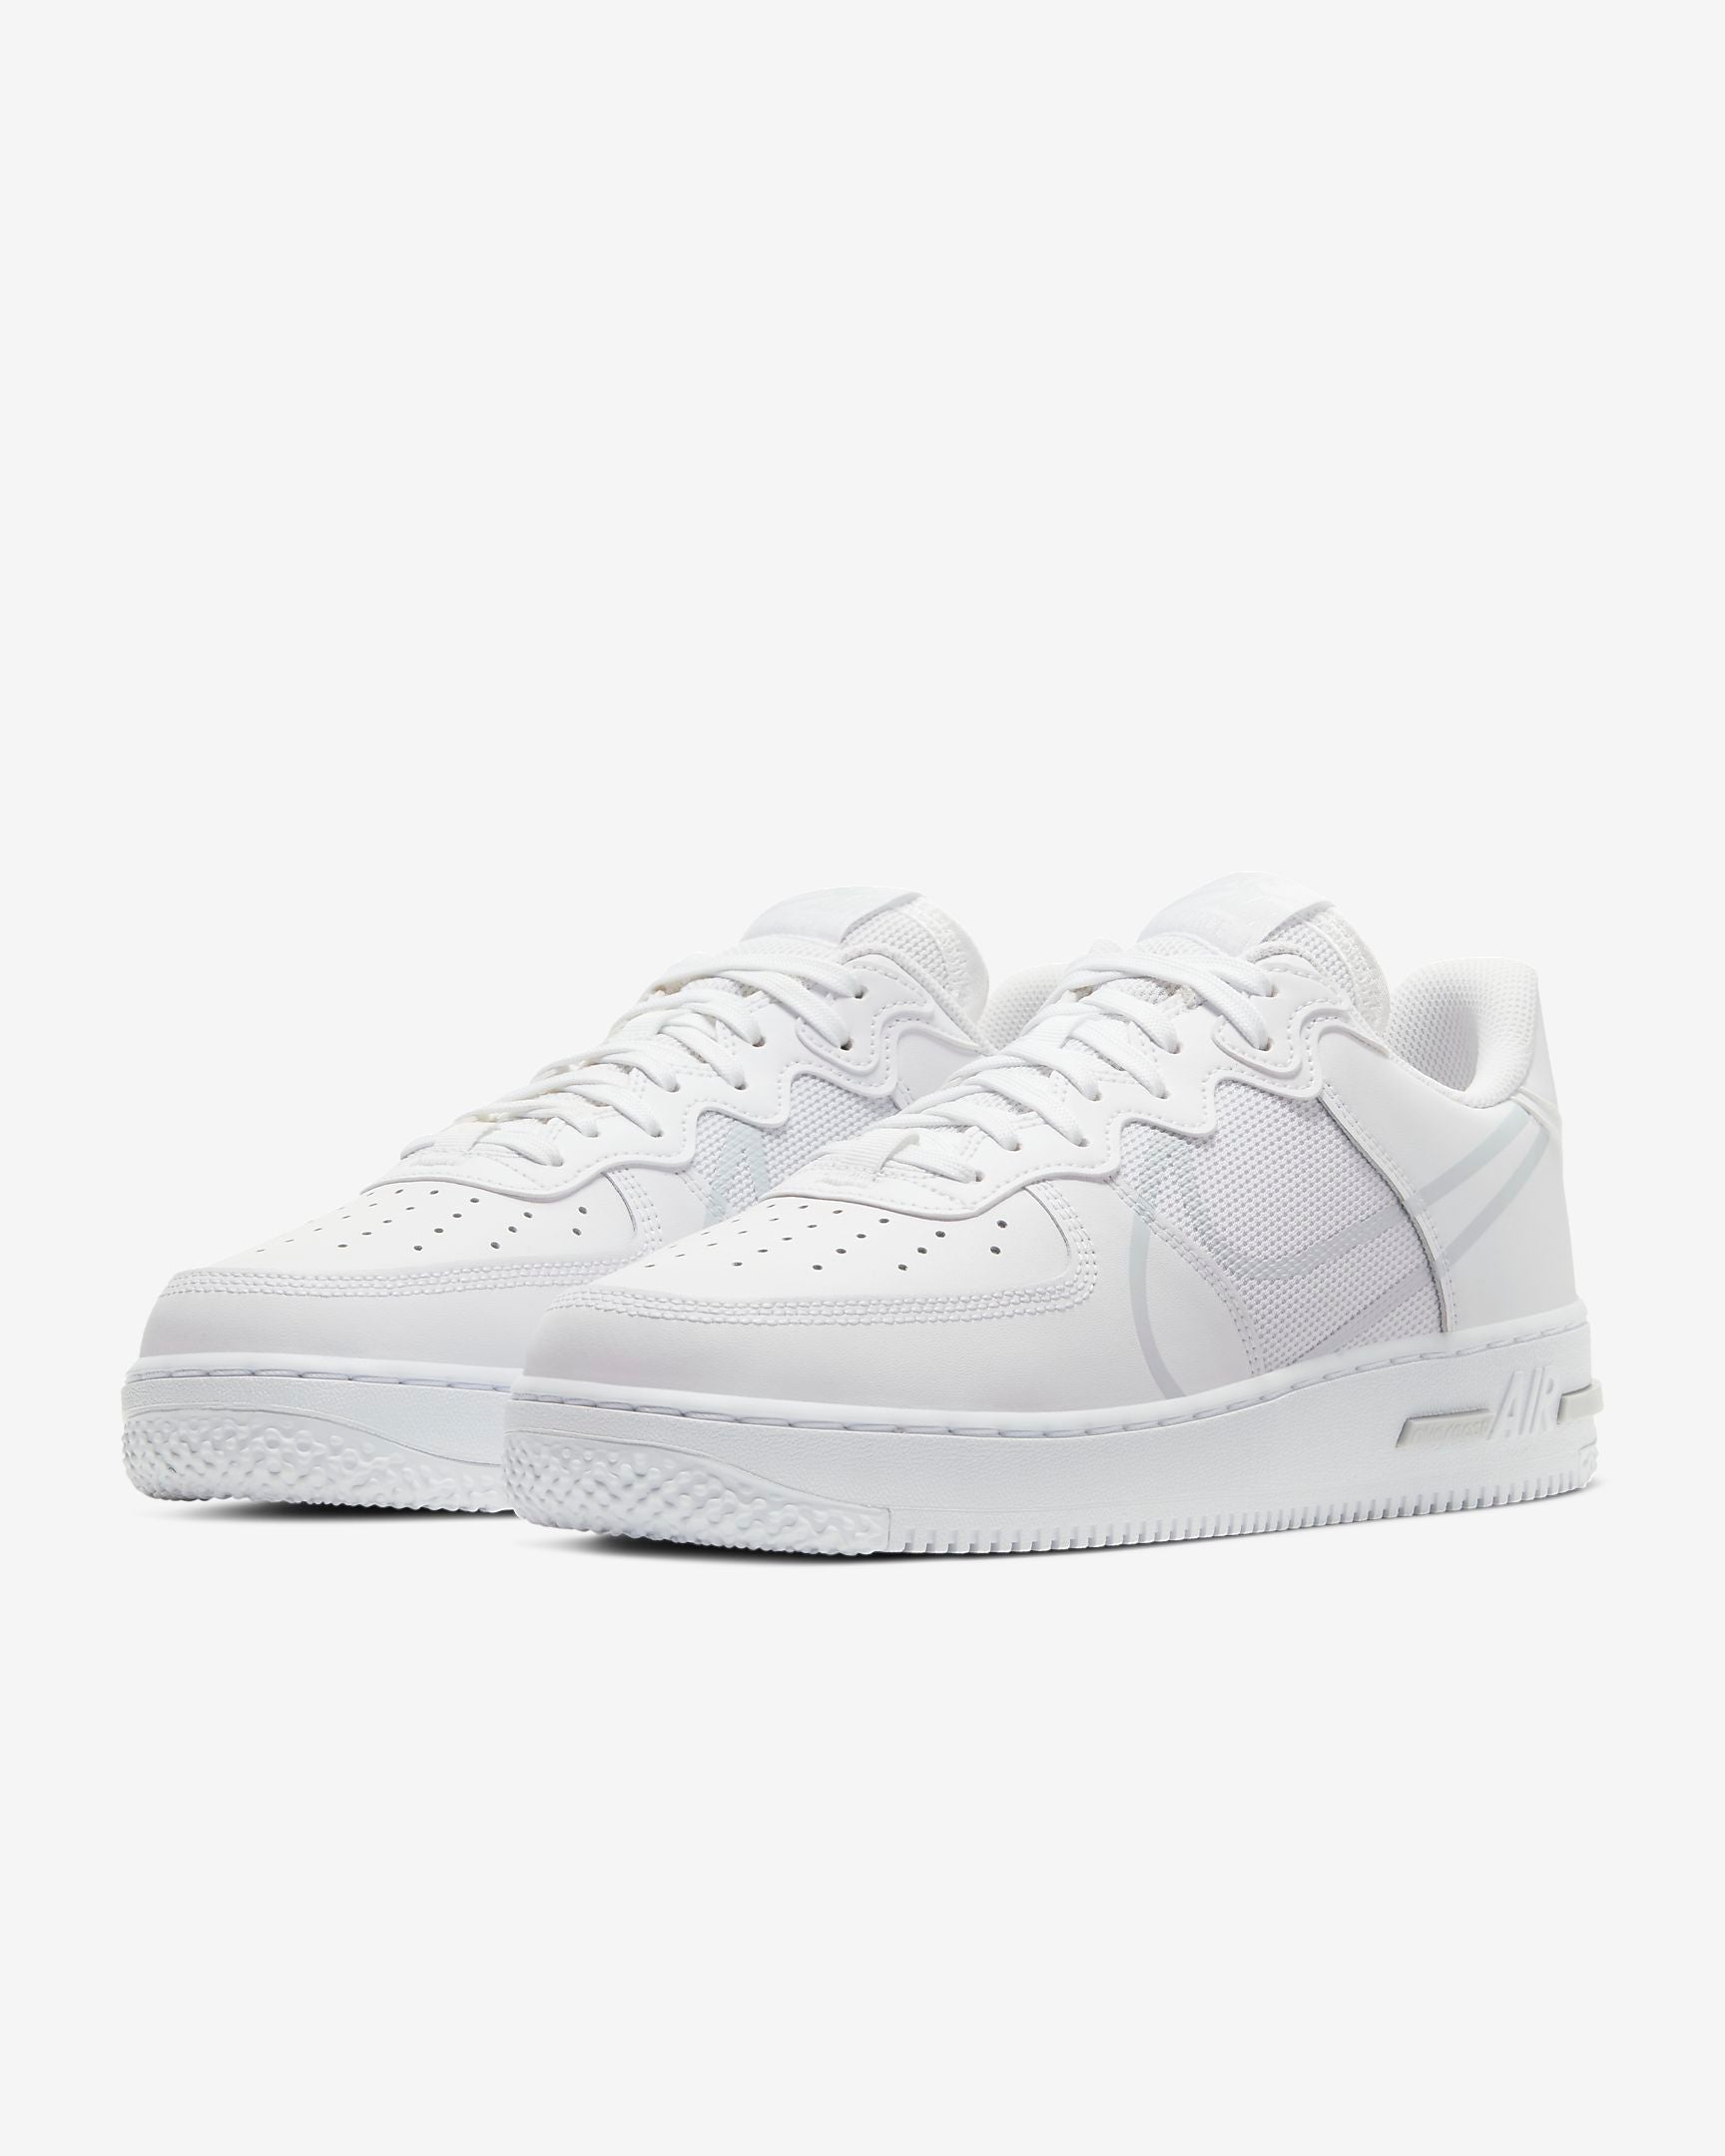 NIKE M'S FOOTWEAR AIR FORCE 1 REACT - WHITE/PURE PLATINUM